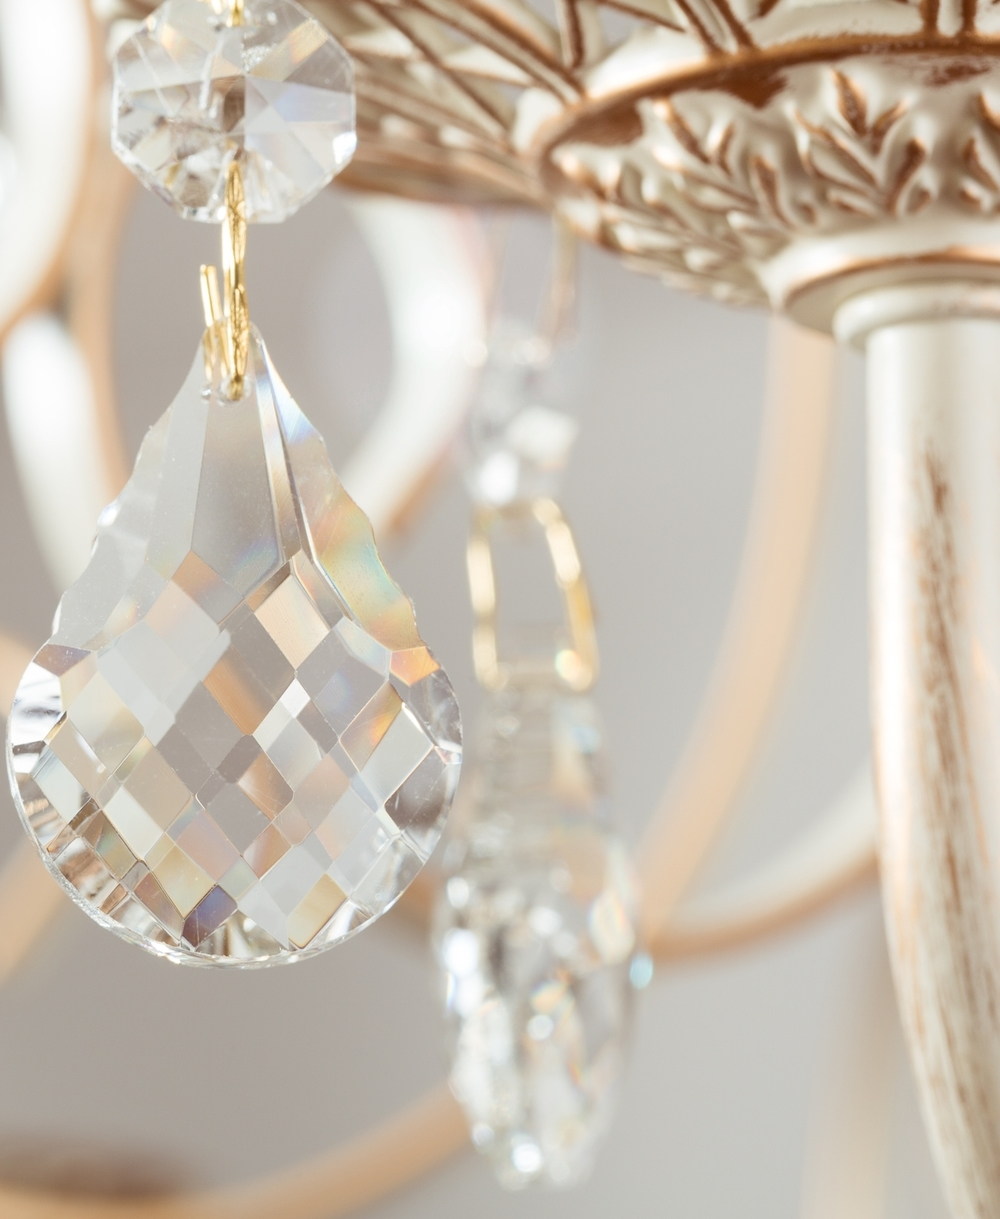 chandelier-crystal-detail-close-up-elegant-decor-76716834.jpg